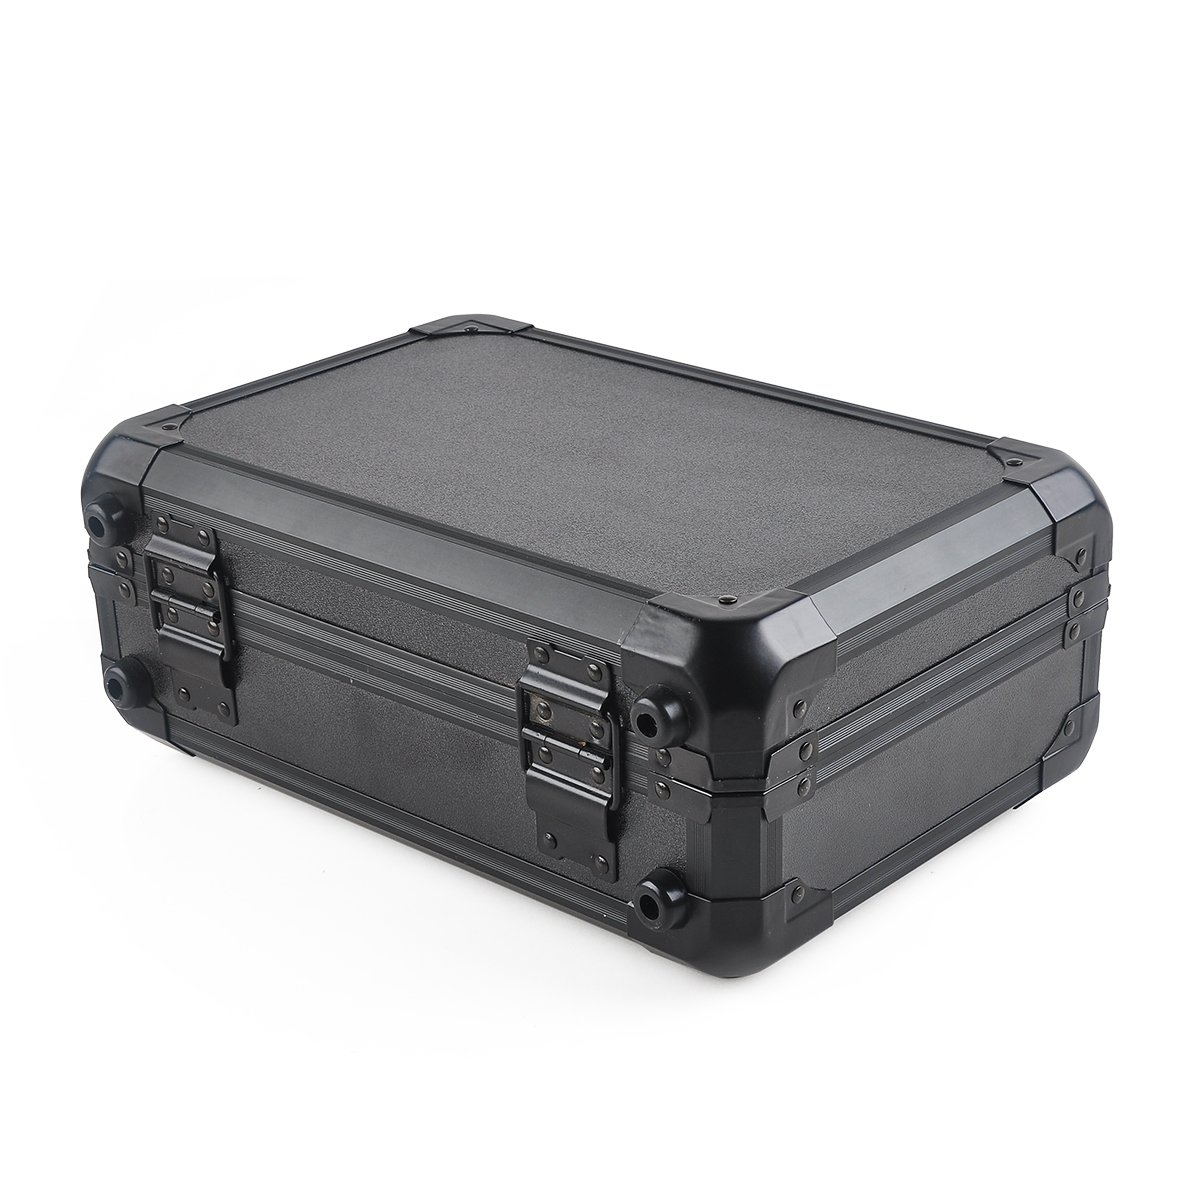 Hobby-Ace DJI Spark Drone Carrying Case by Travel Storage Case Bag fit for Spark Accessories Remote Controller and 3 Batteries,Propellers,Battery Charger and other accessories by Snotra Shop (Image #5)